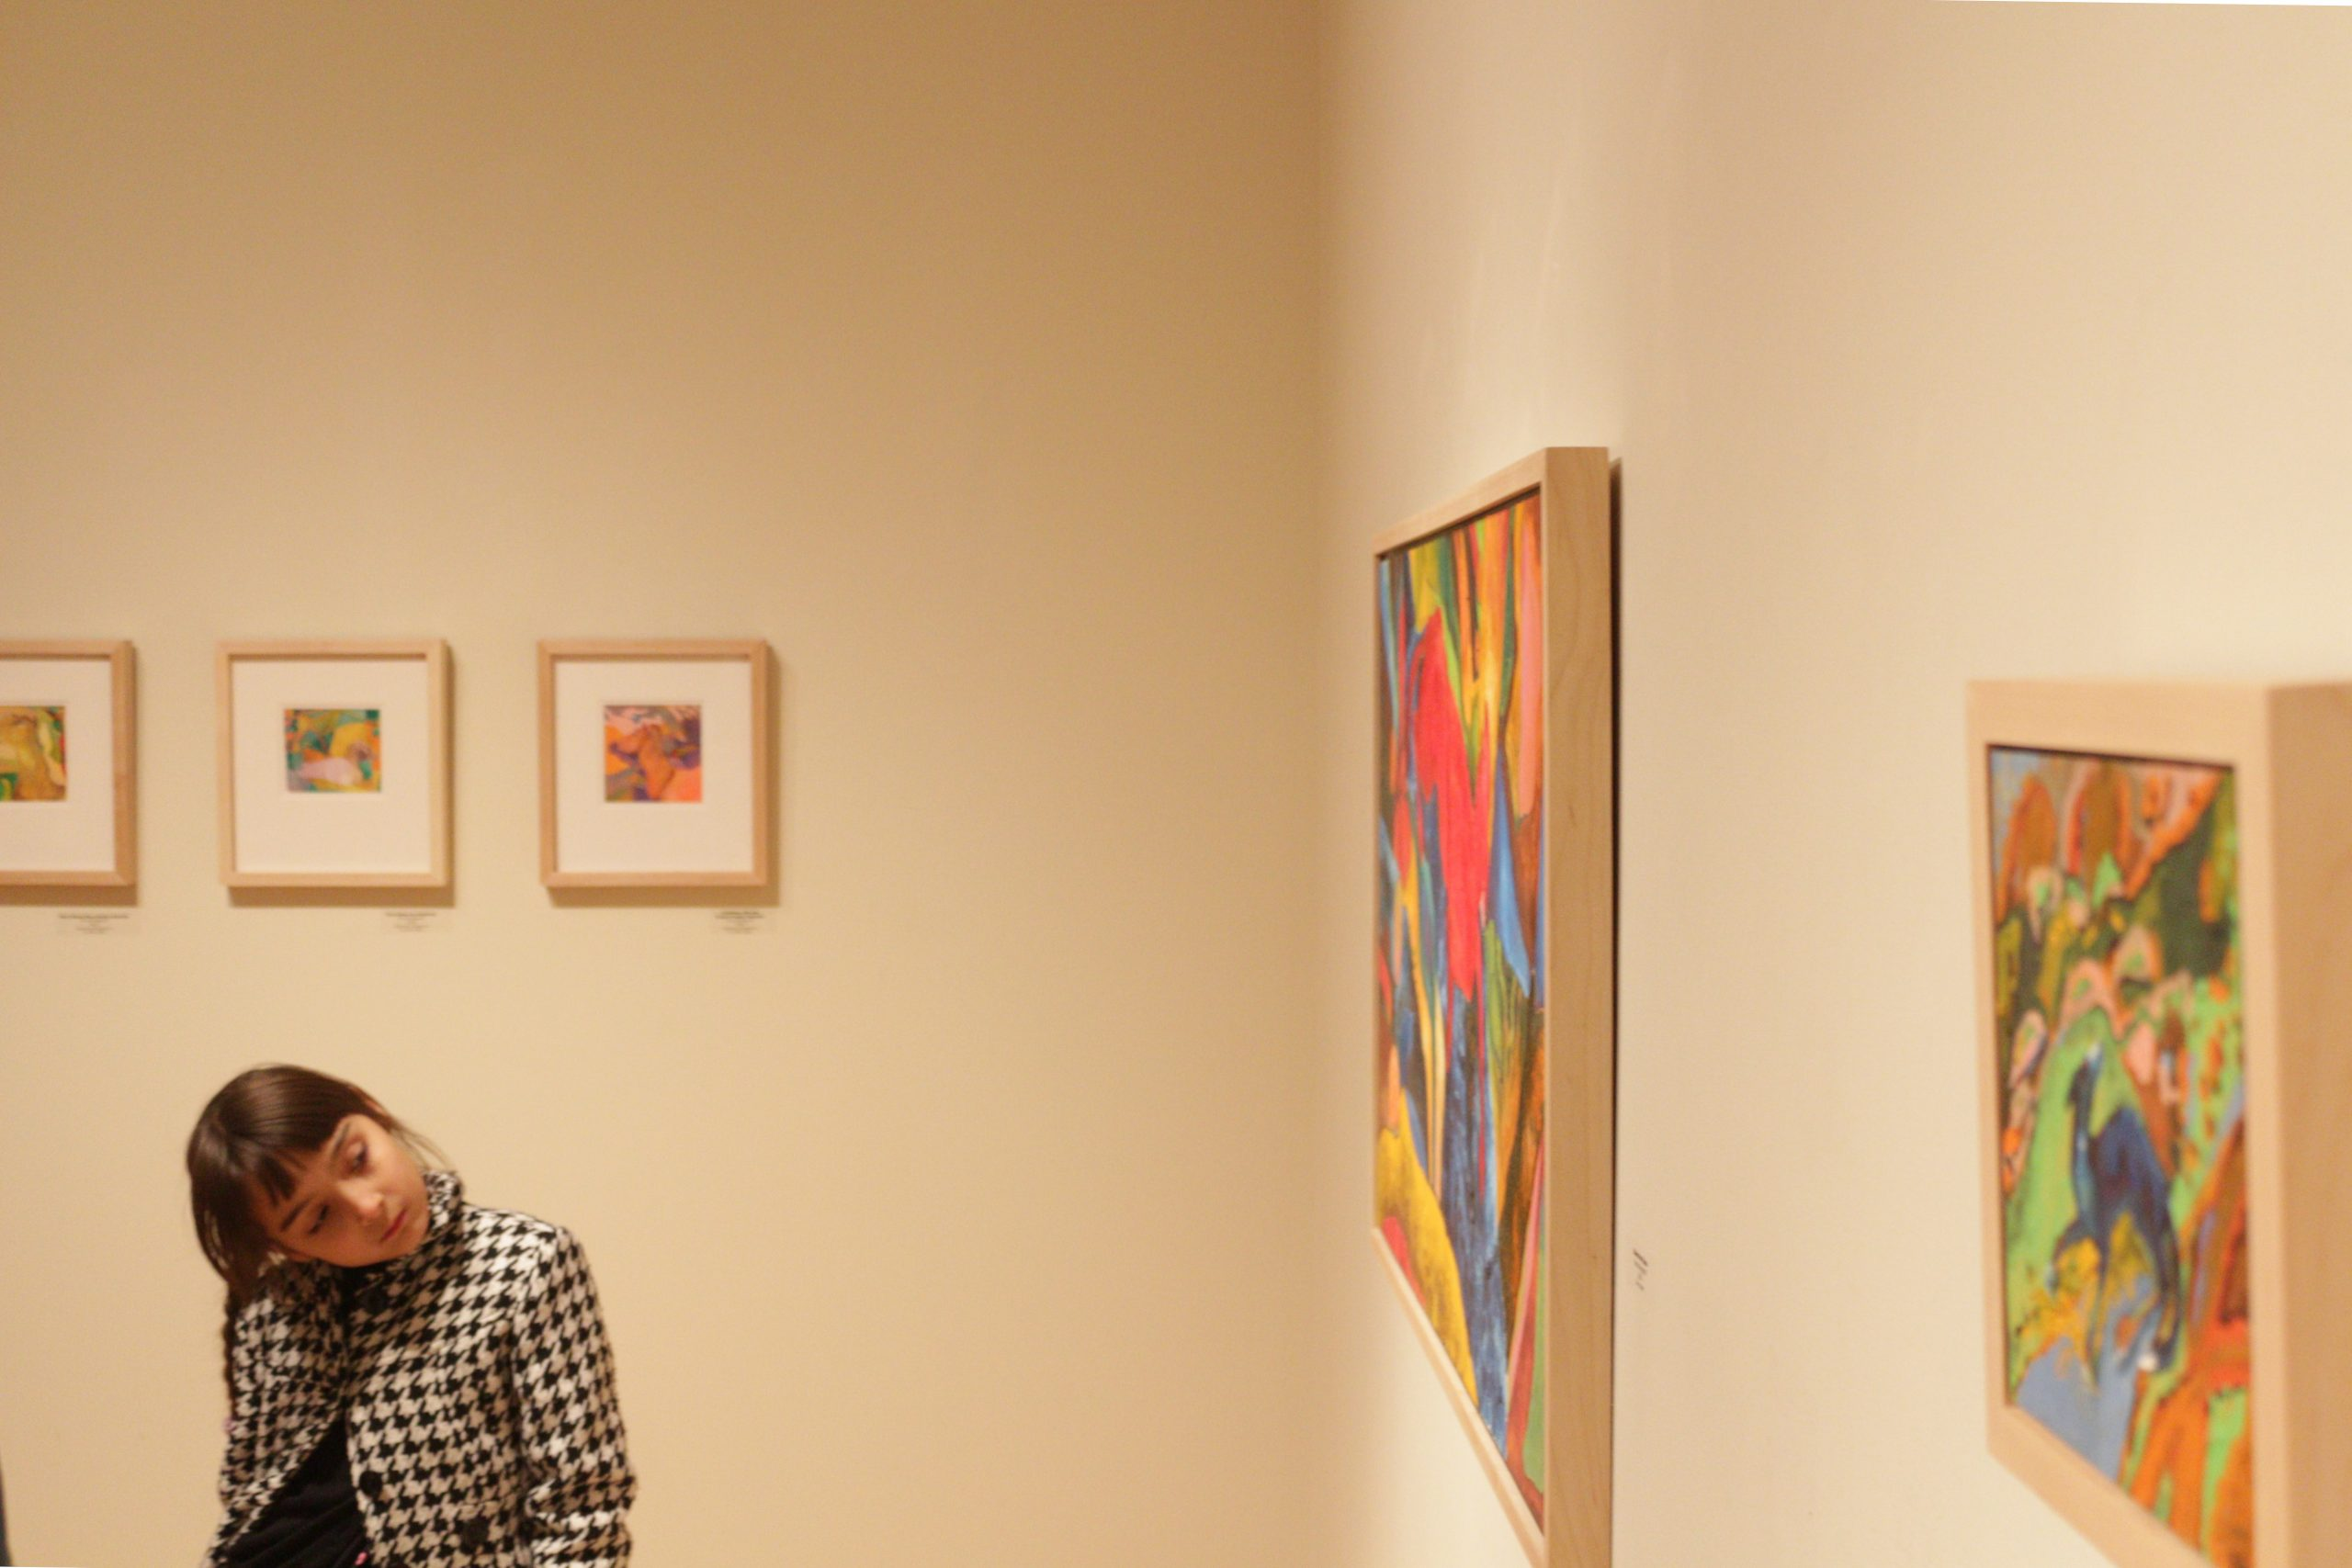 A student looks at the art hanging in the Hershberger Art Gallery